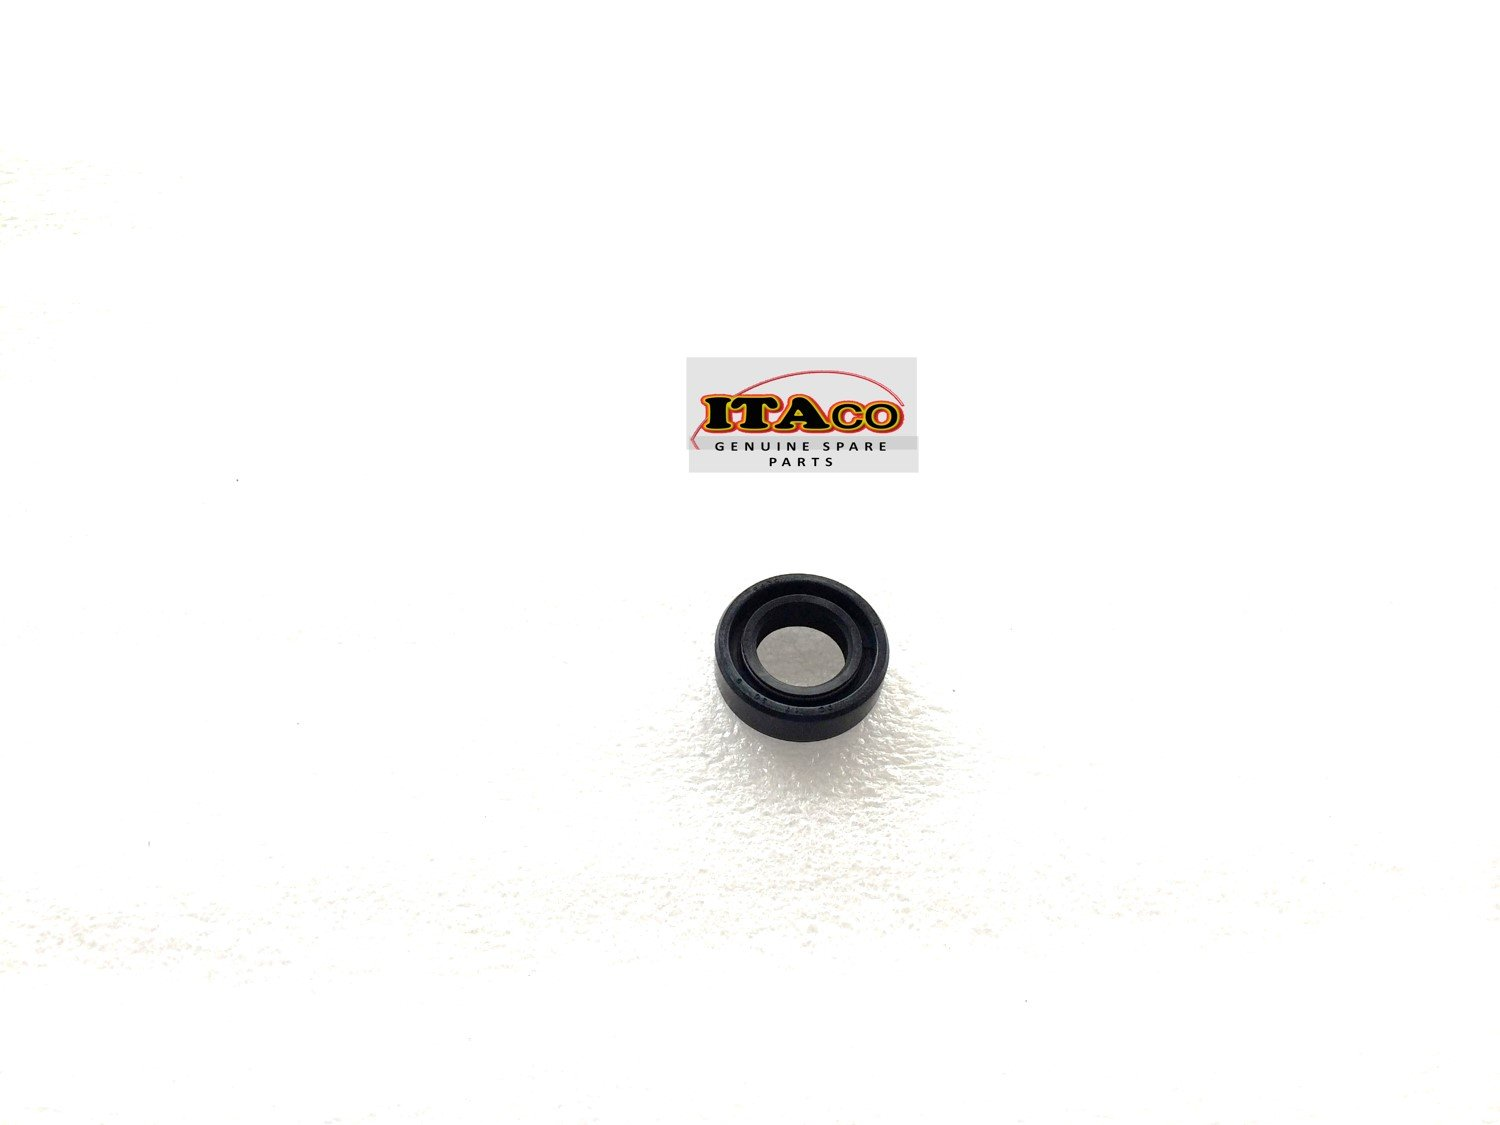 OIL SEAL PUMP CASE 346-65013 fit TOHATSU Nissan Outboard NS M F 9.9HP - 30HP 2/T ITACO